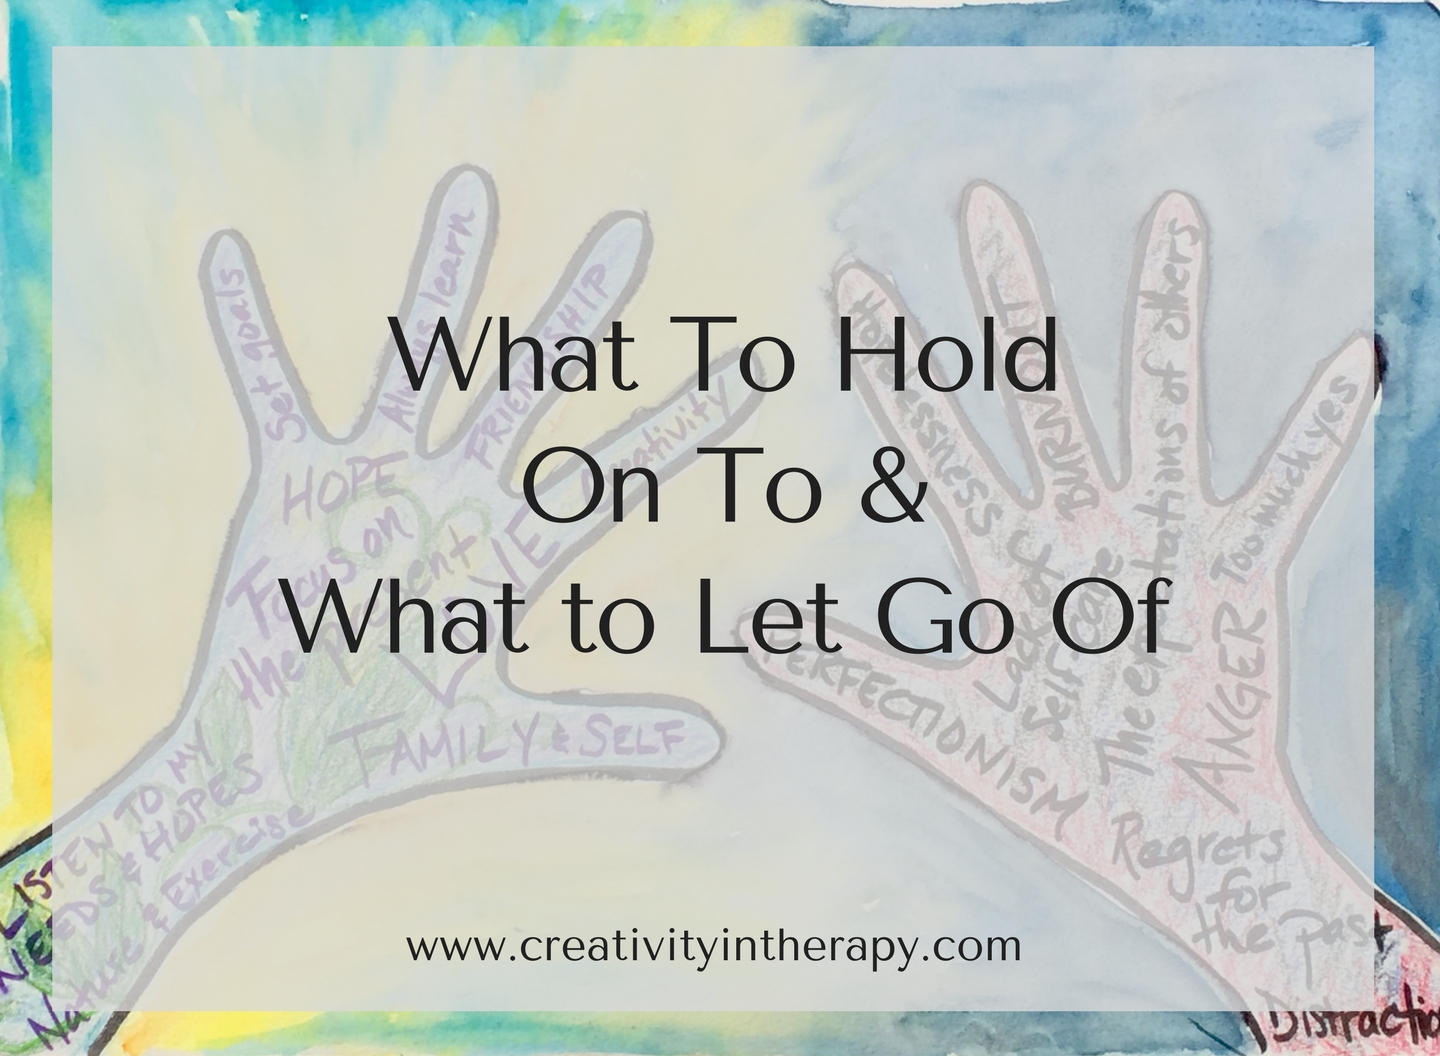 What Do You Need To Hold On To And Let Go Of